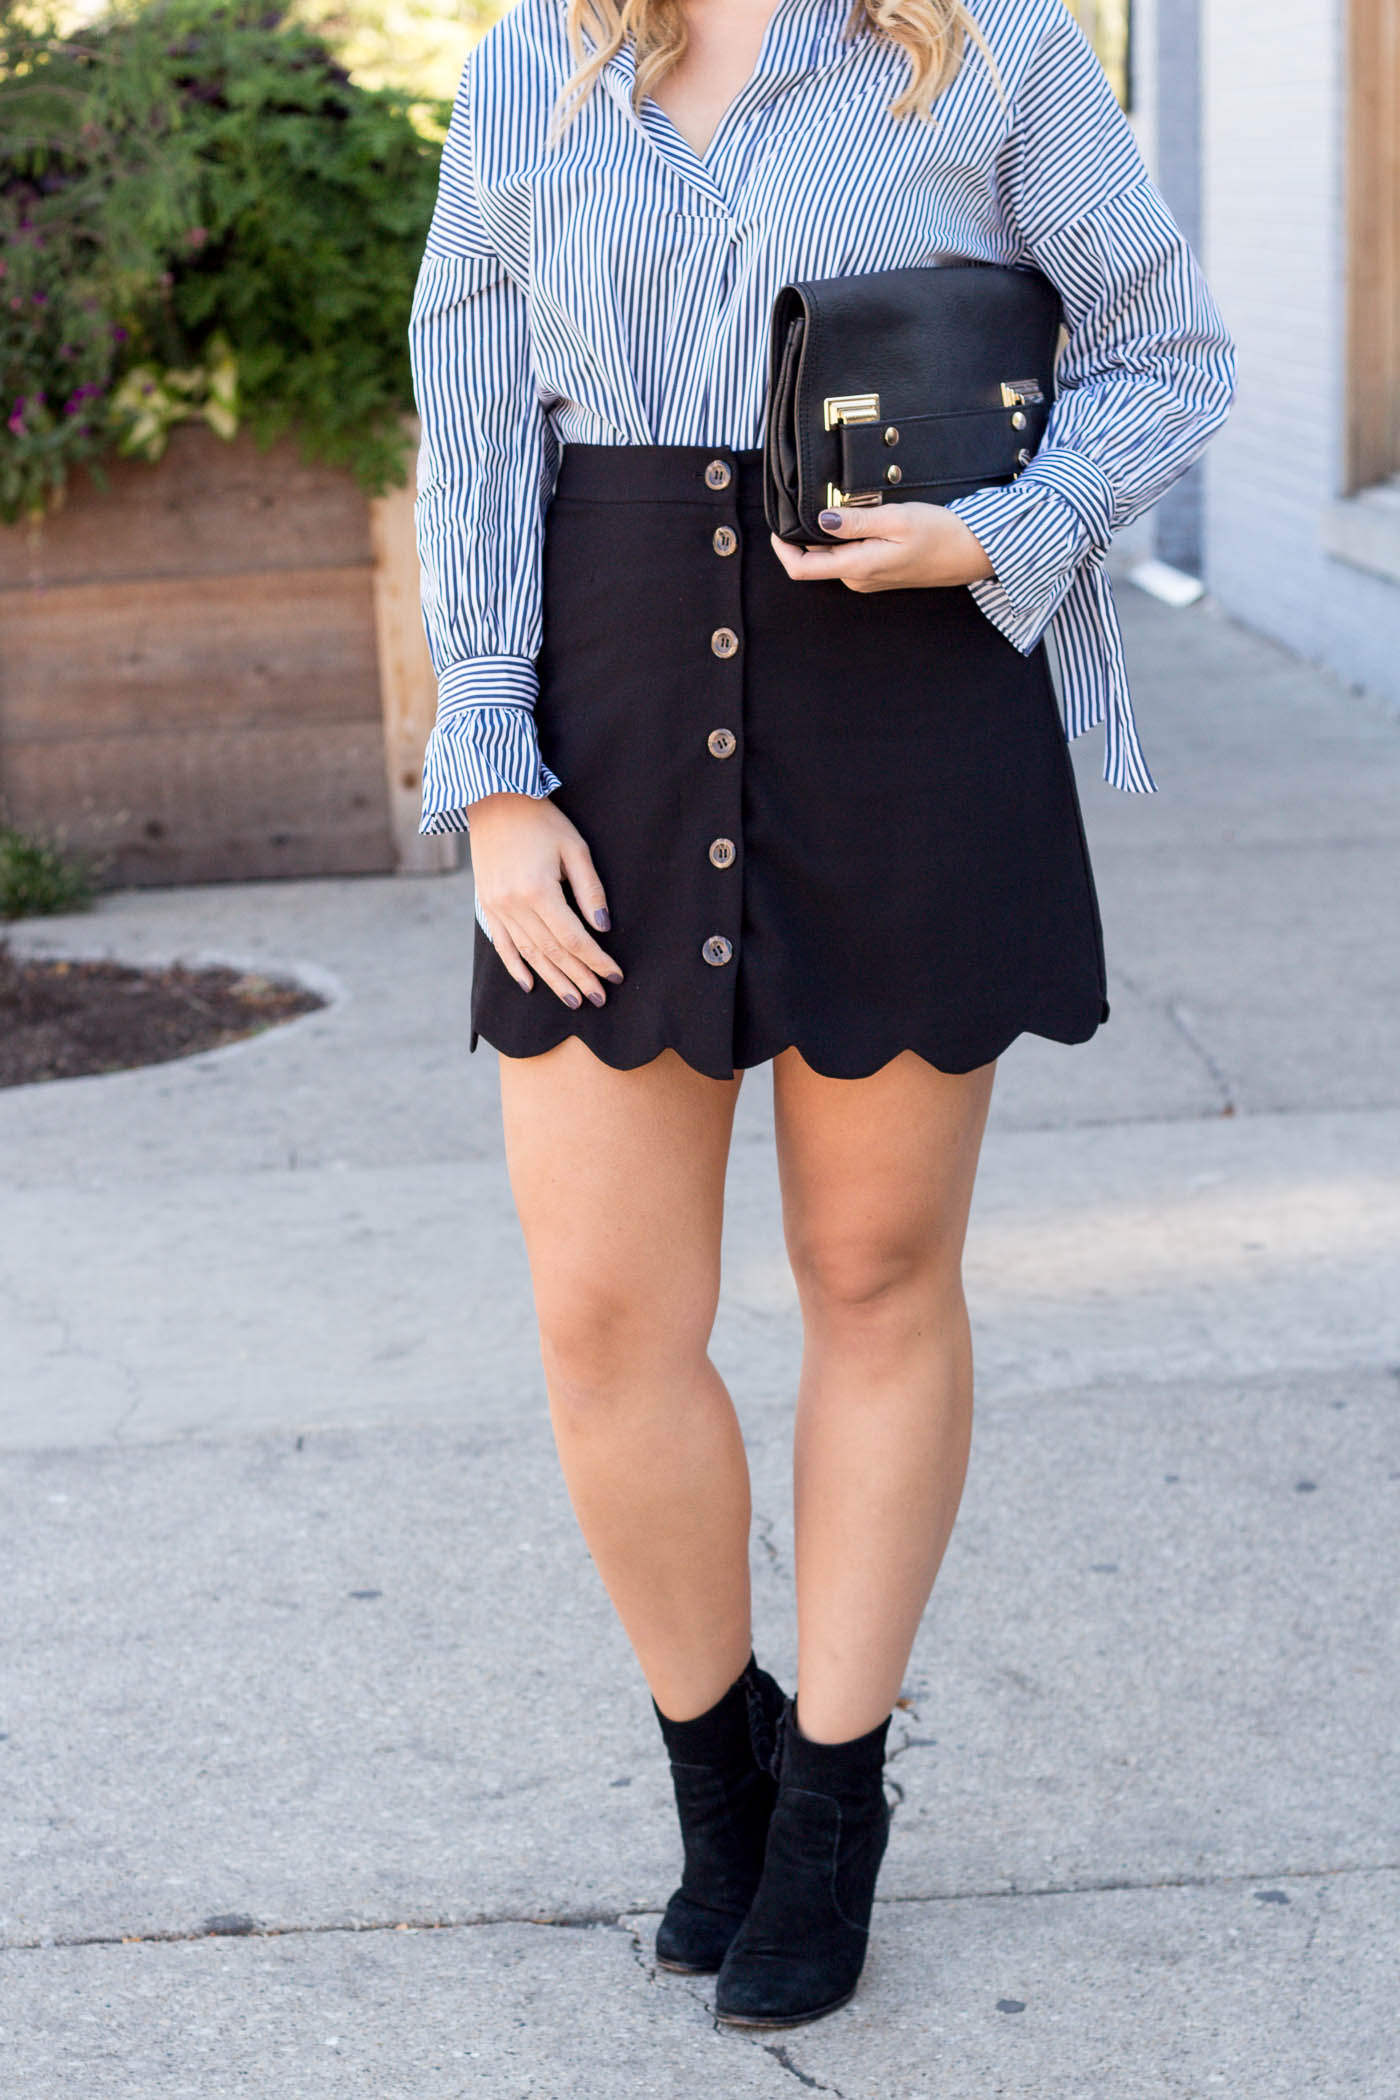 Black button down skirt from ASOS